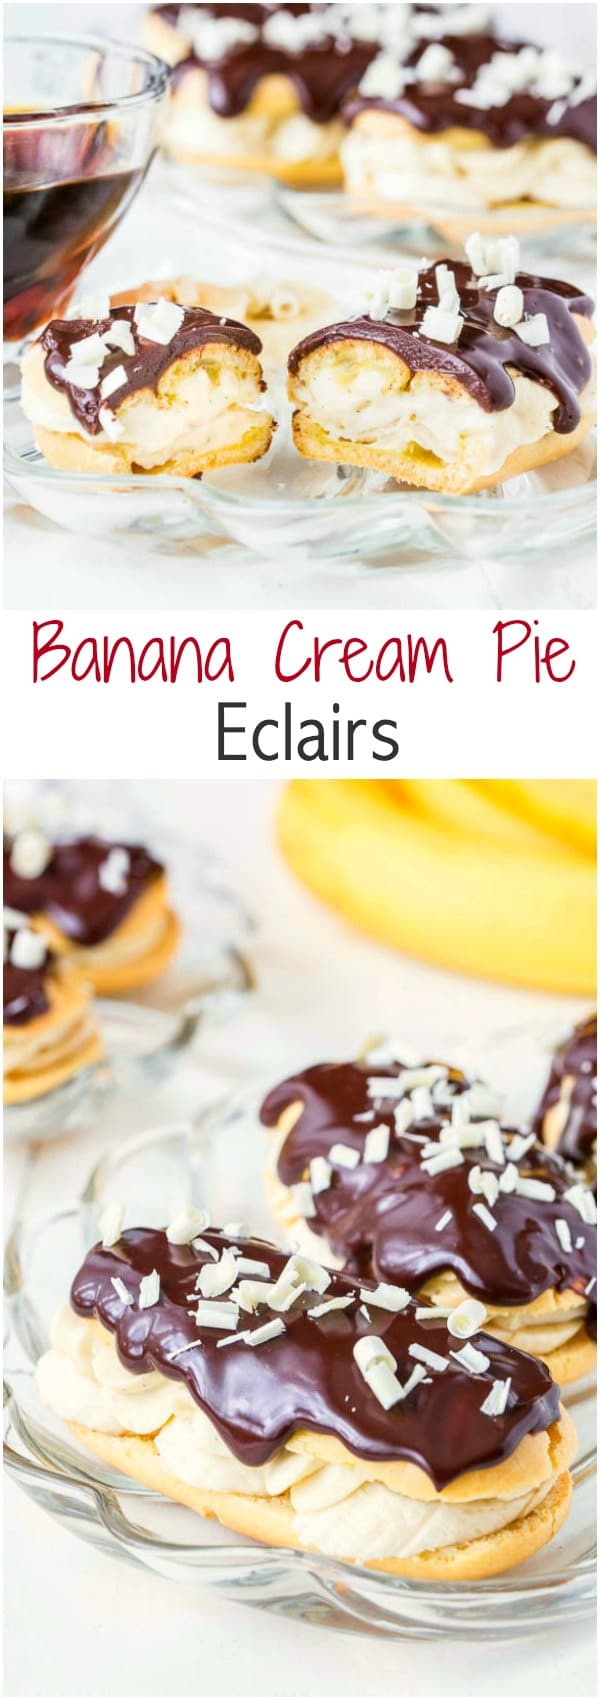 The same delicious banana cream pie flavors, but in a dainty pastry form! So indulgent and so good!